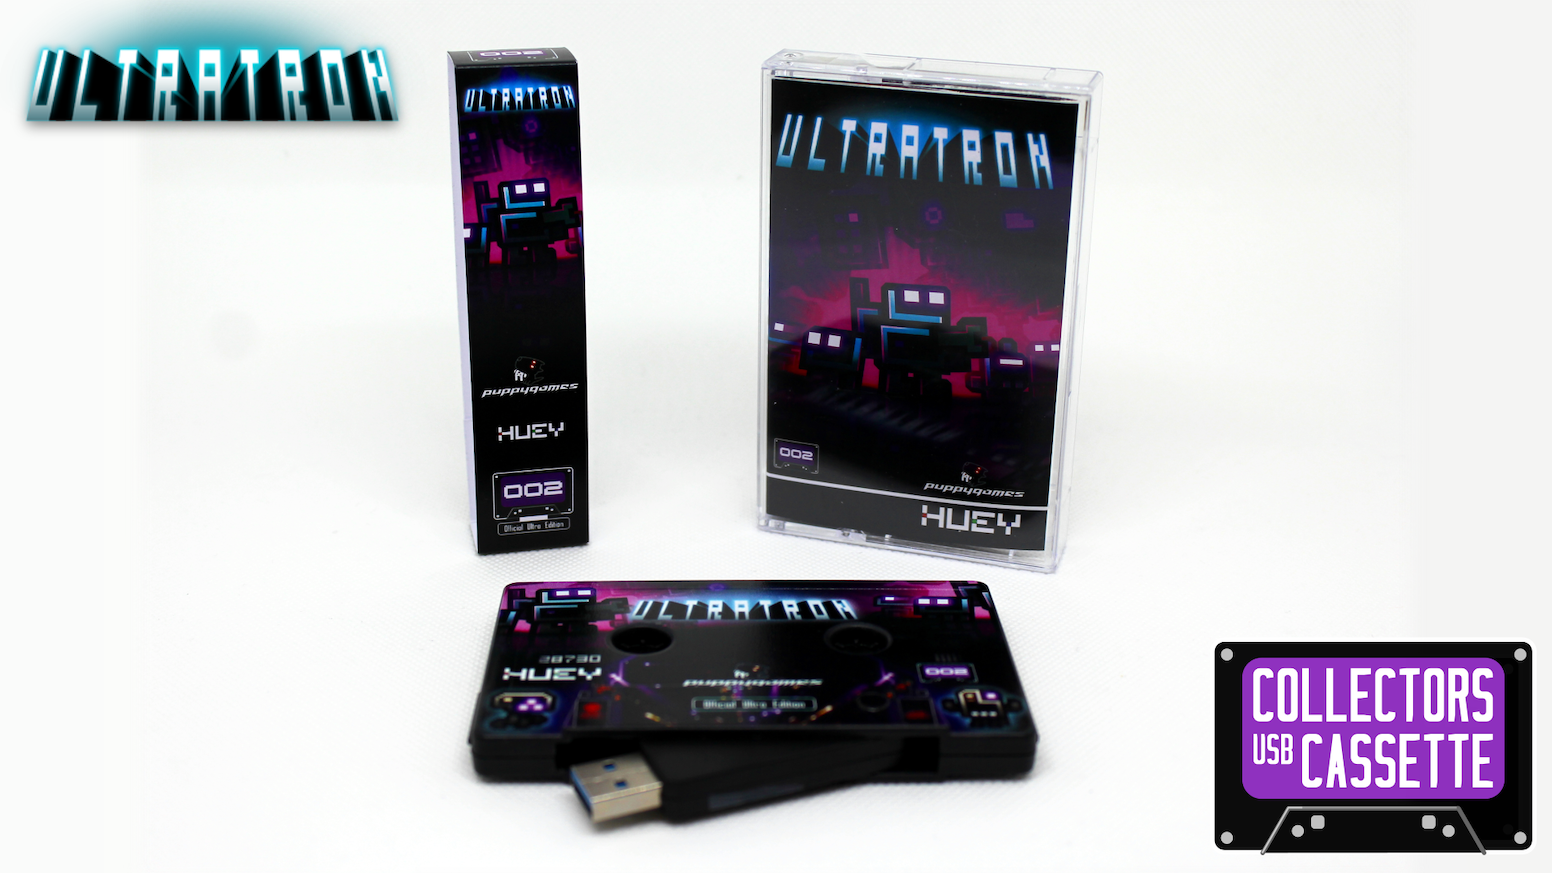 Exclusive collectors USB cassette featuring Ultratron (DRM free) and bonus extras. Missed the Kickstarter? Click below to get your cassette!